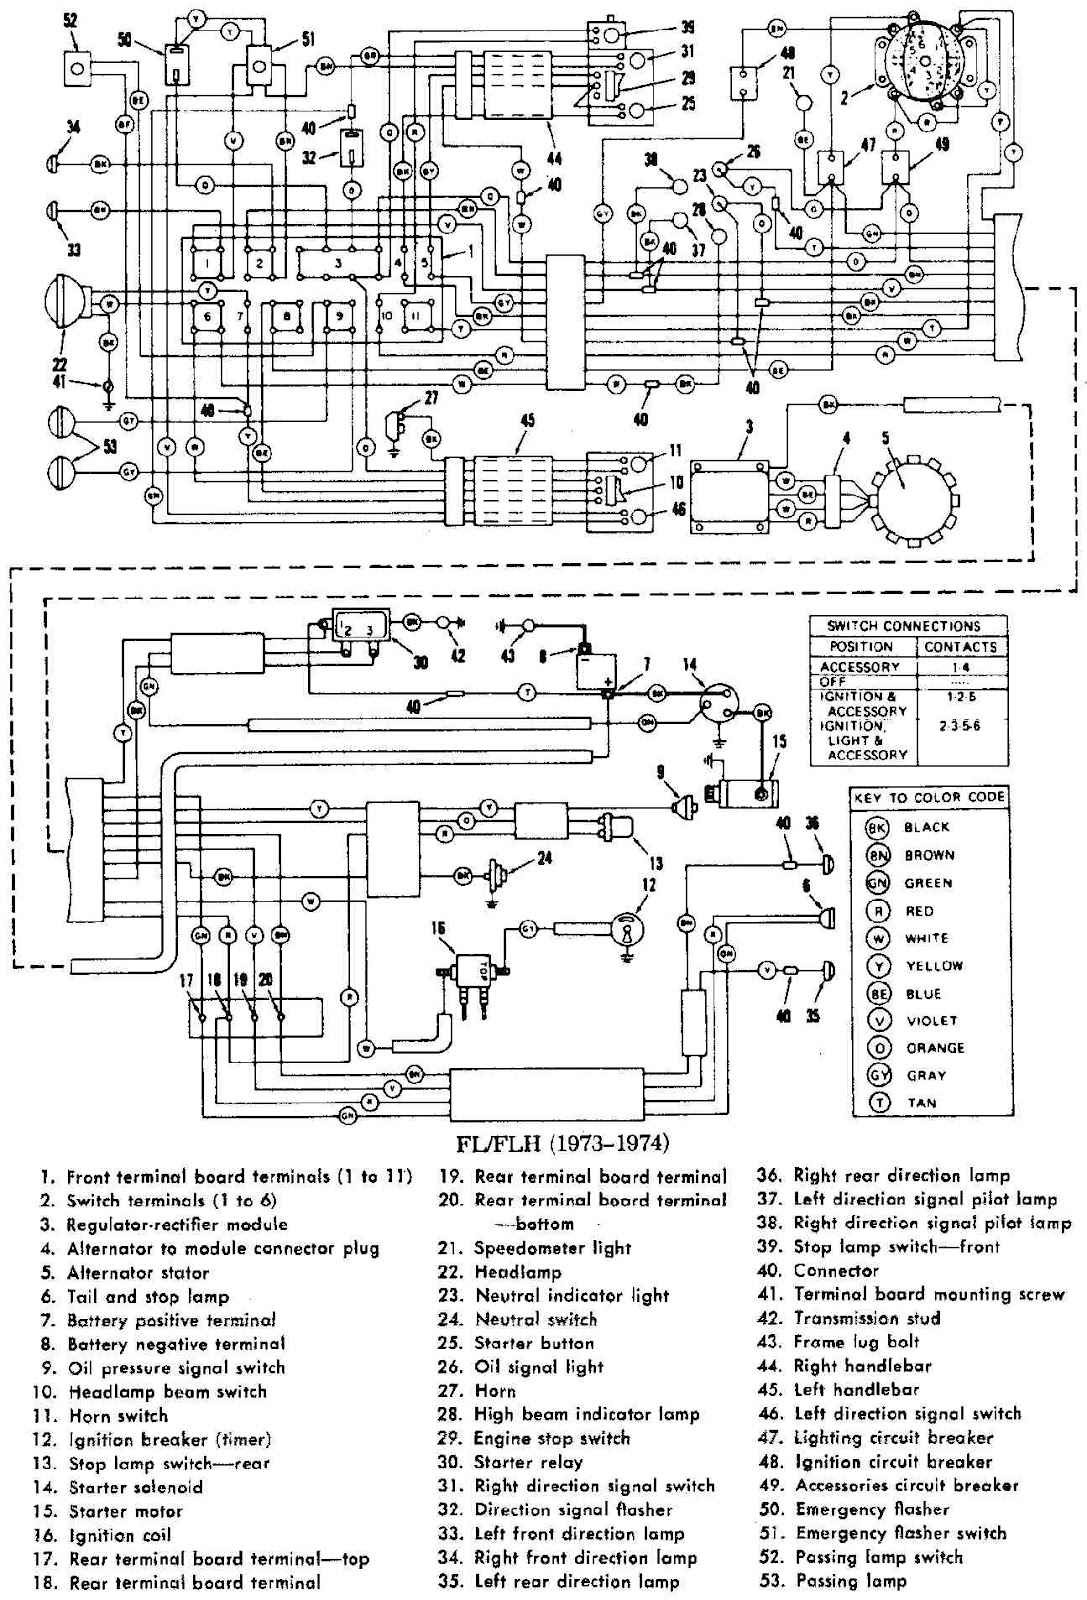 wiring diagram radio harley 2014 the wiring diagram harley turn signal wiring diagram nilza wiring diagram